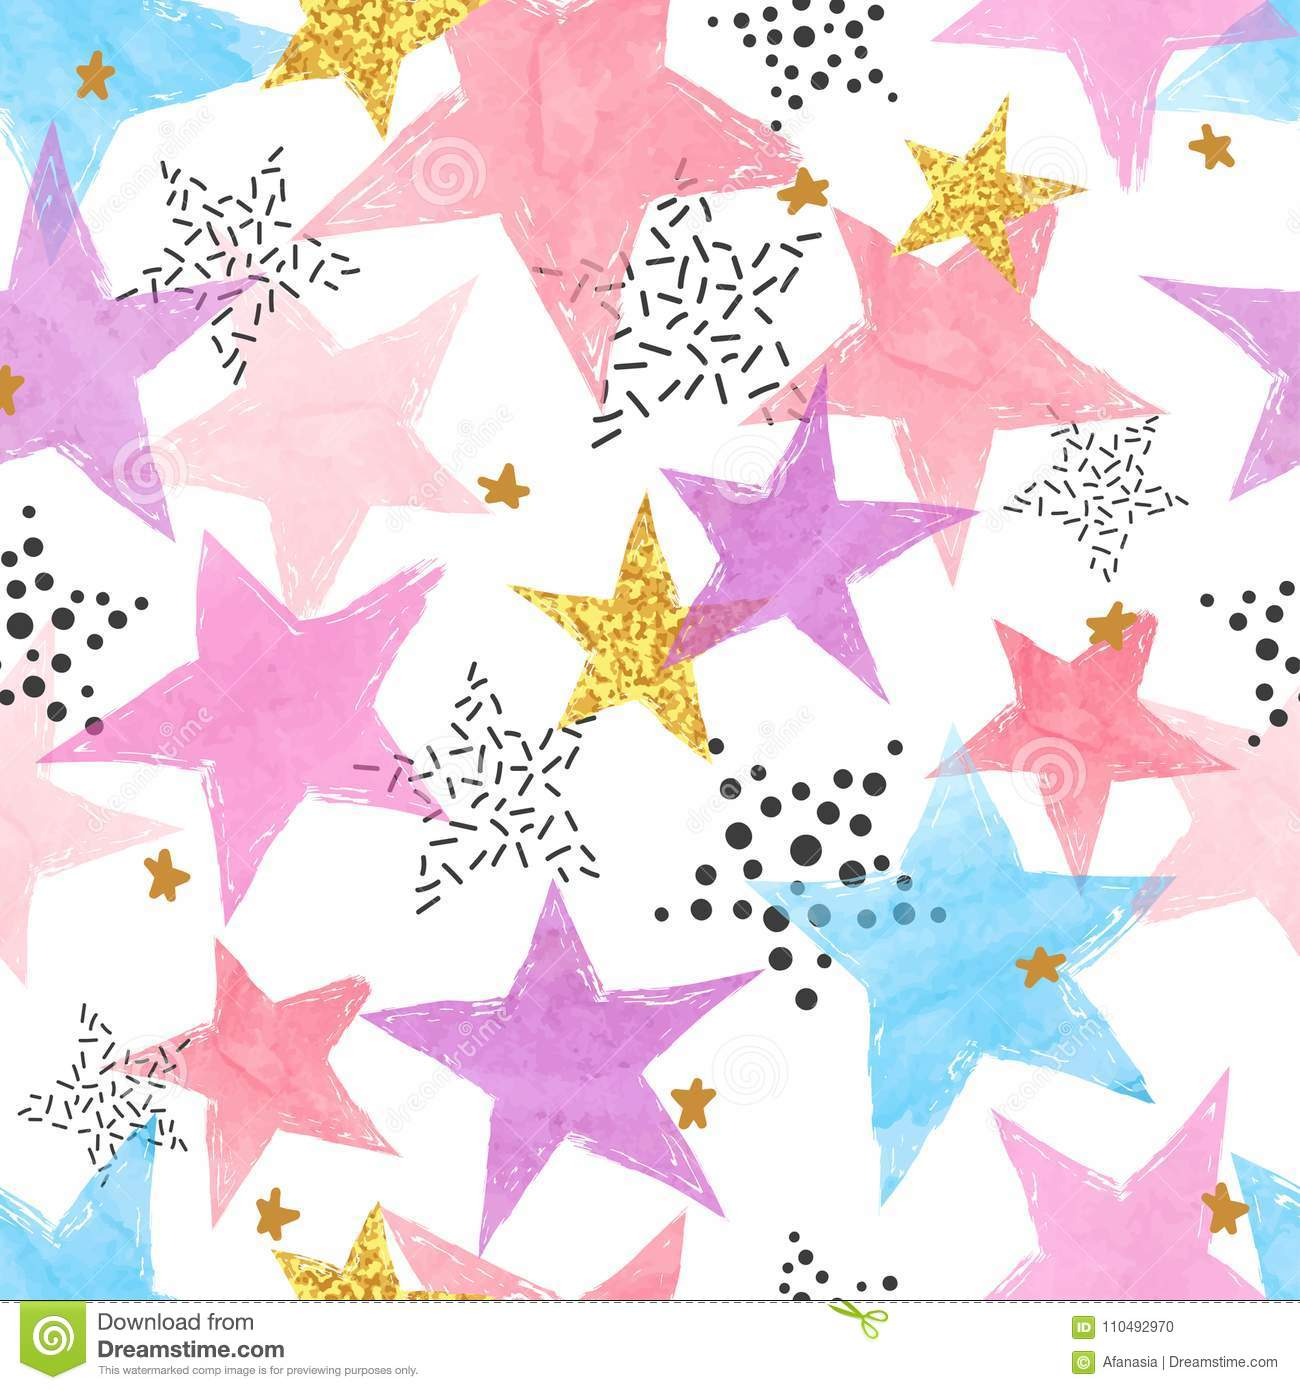 Abstract celebration background with watercolor stars